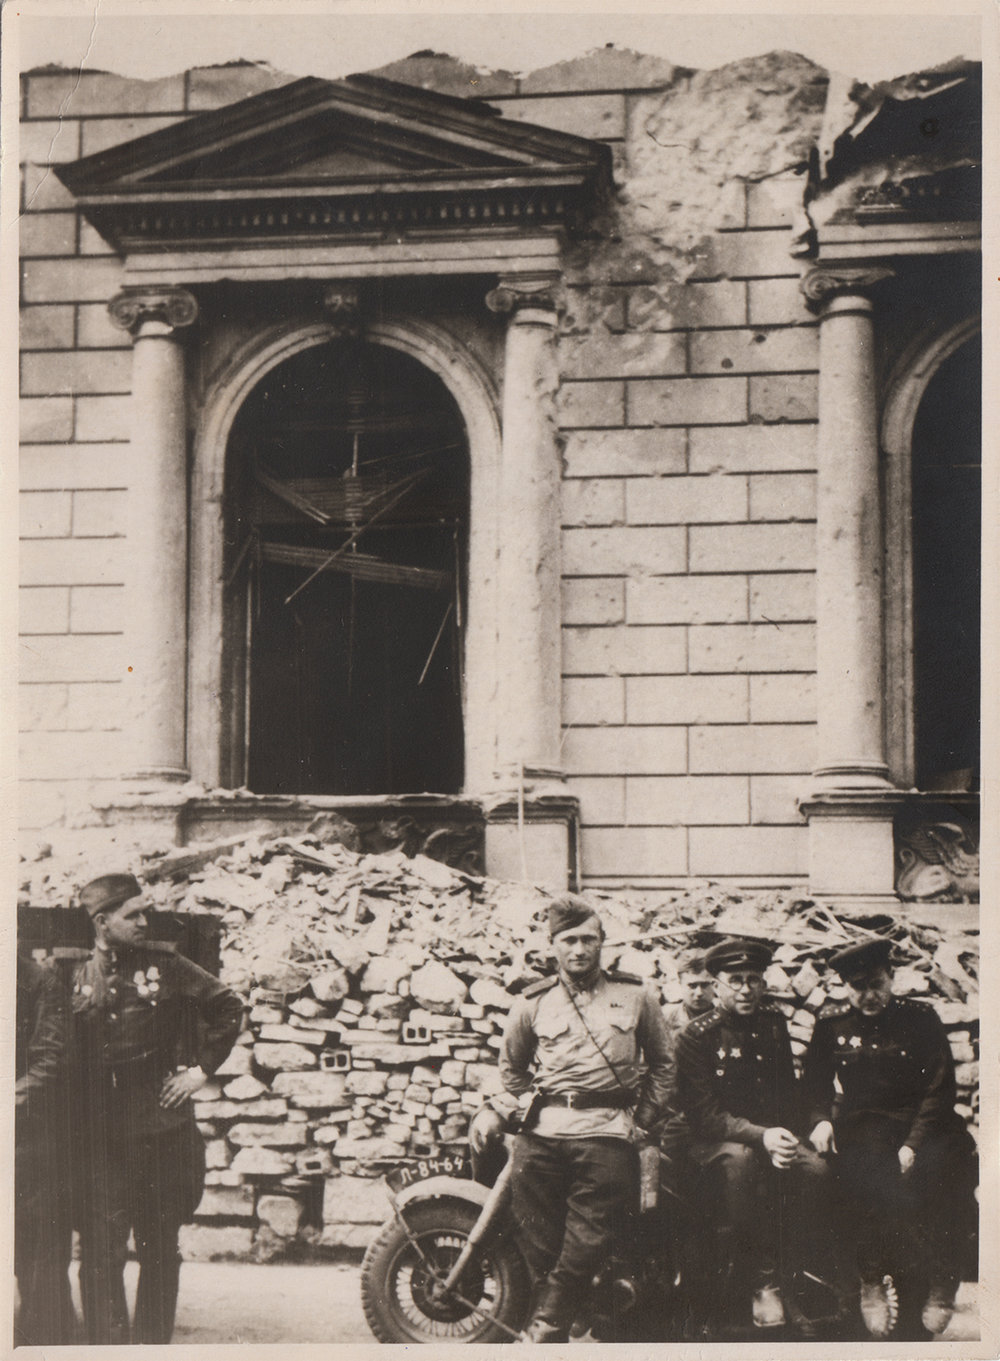 Moisey Melamed (wearing glasses) demining the Reich Chancellery. Berlin, 1945